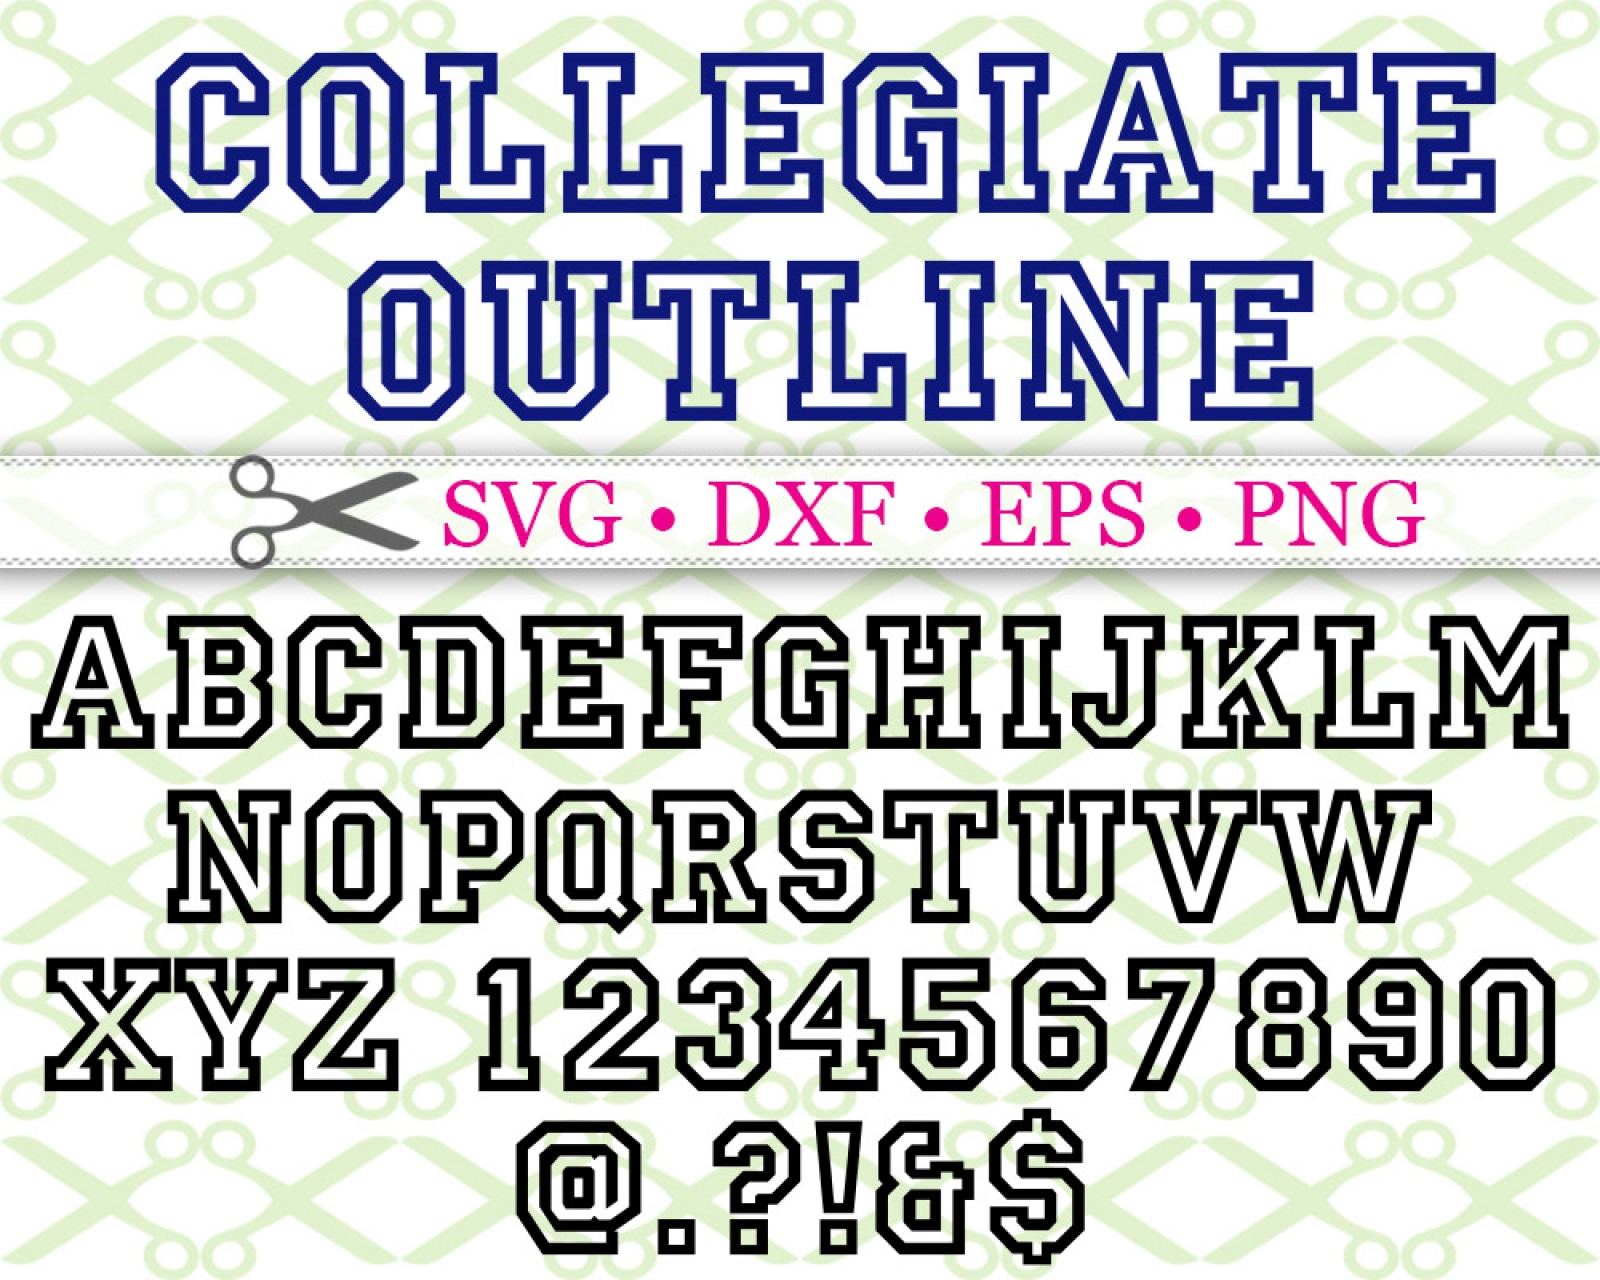 COLLEGIATE OUTLINE FONT SVG FILES